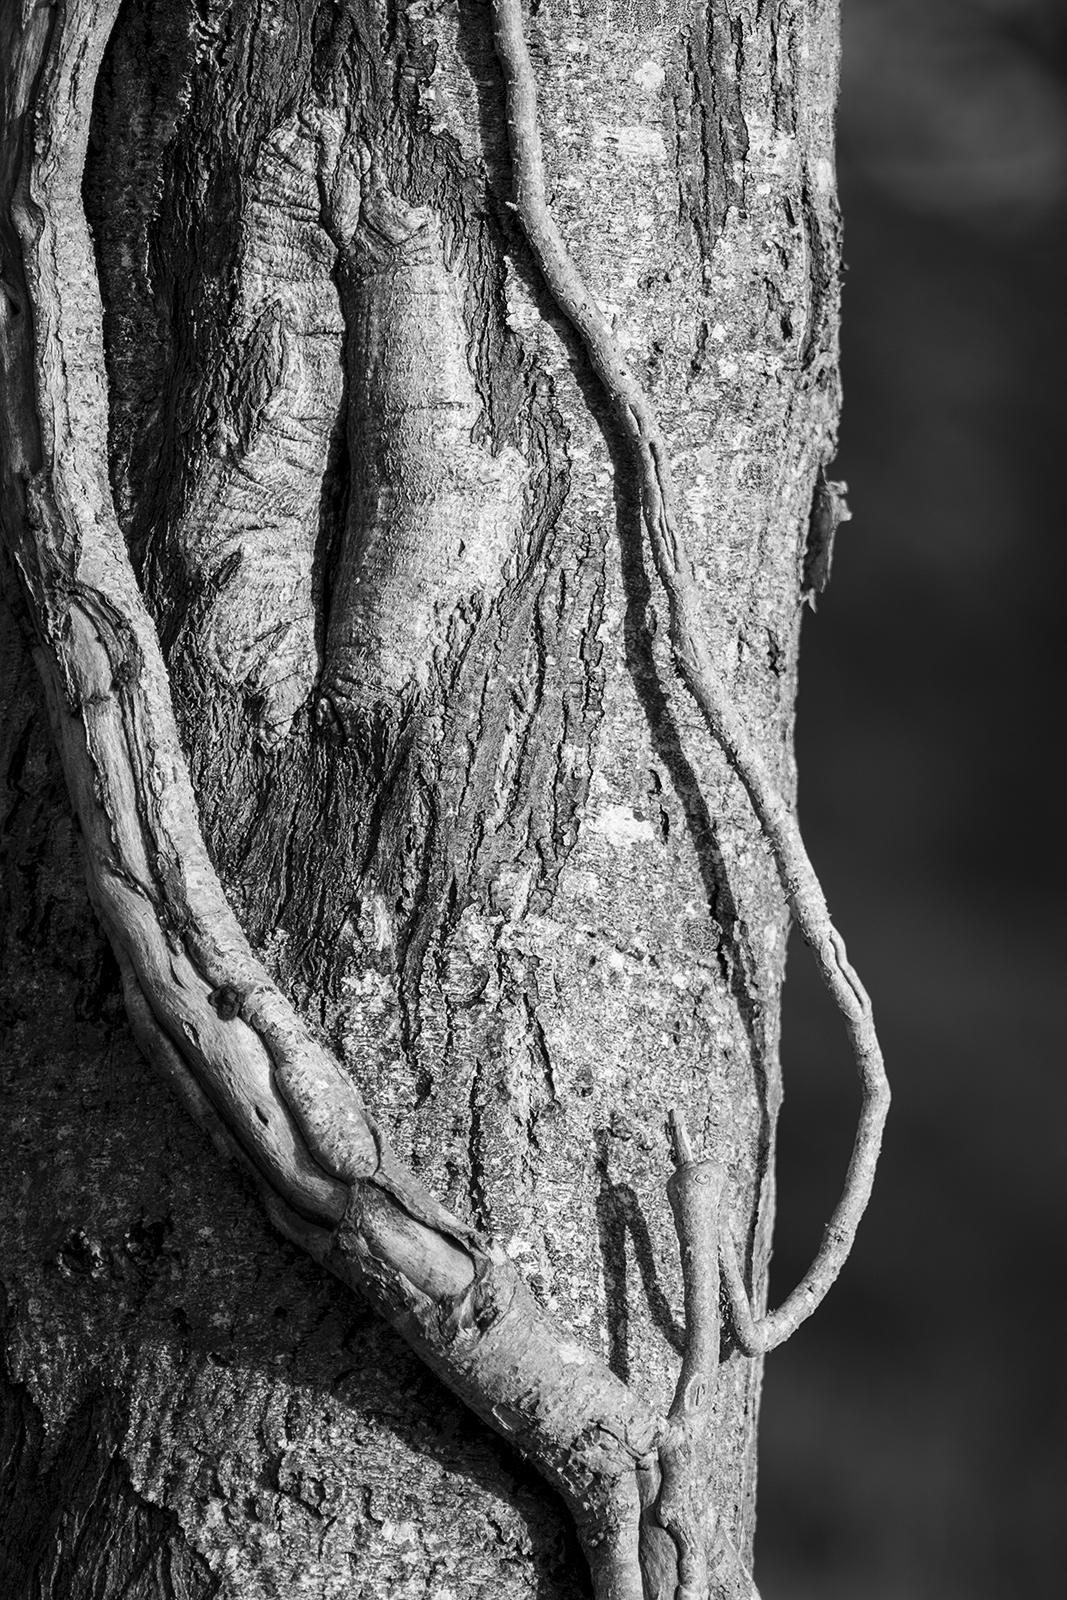 Ivy wrapped around scarred Alder trunk, black and white monochrome nature photography ©P. Maton 2018 eyeteeth.net